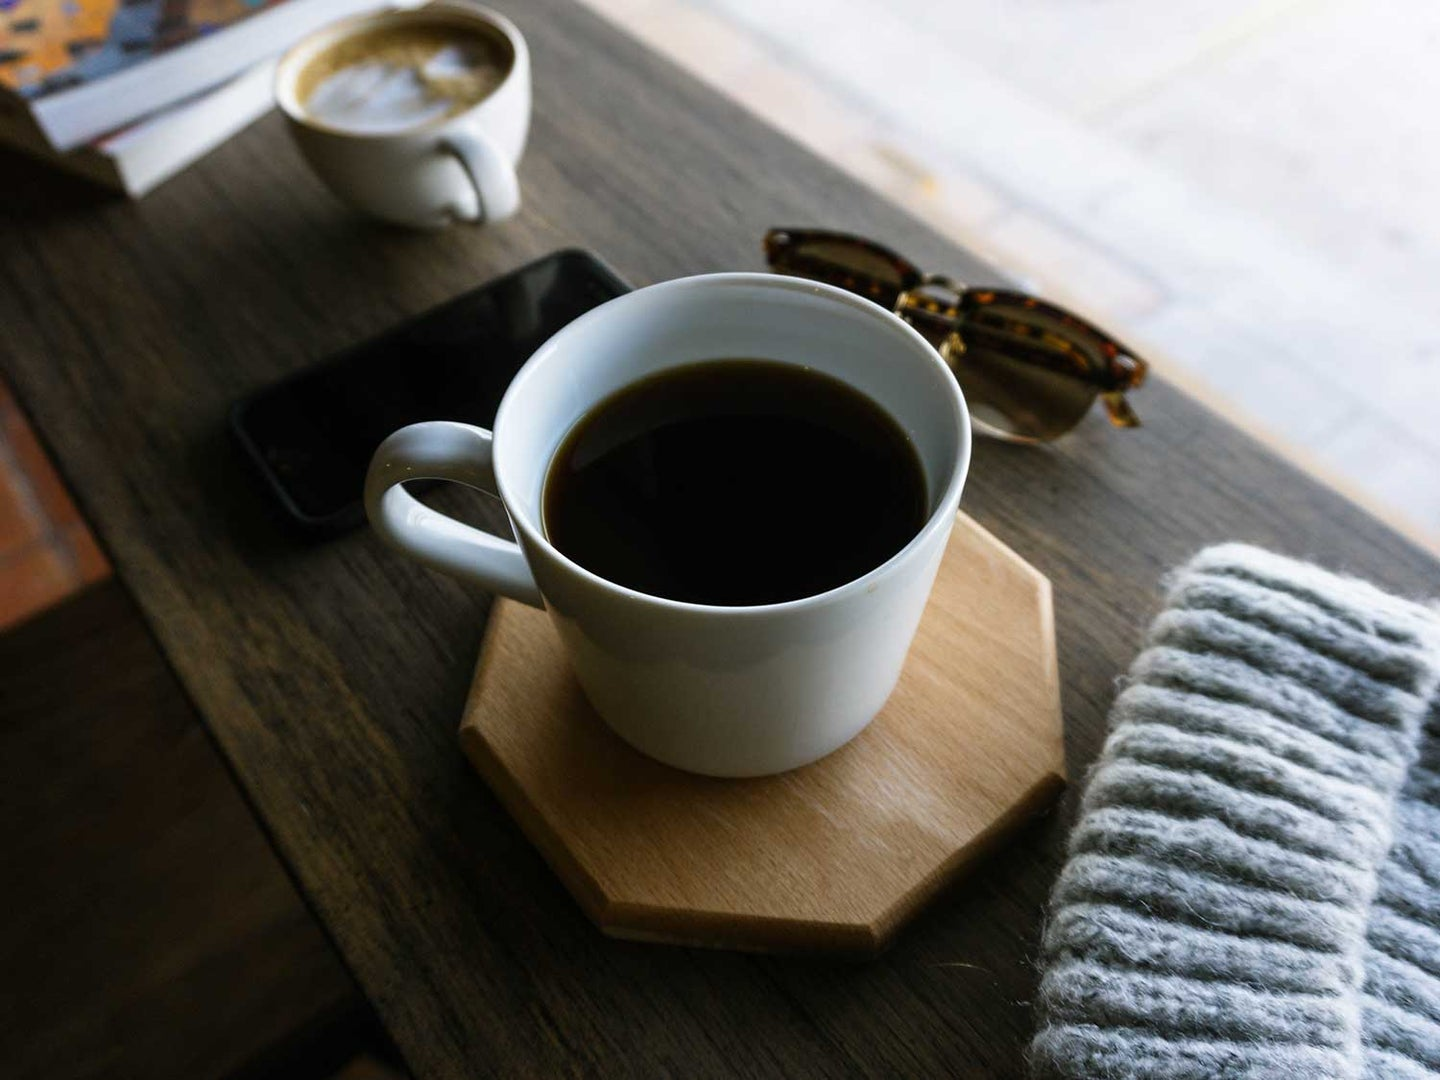 Coffee cup on coaster.